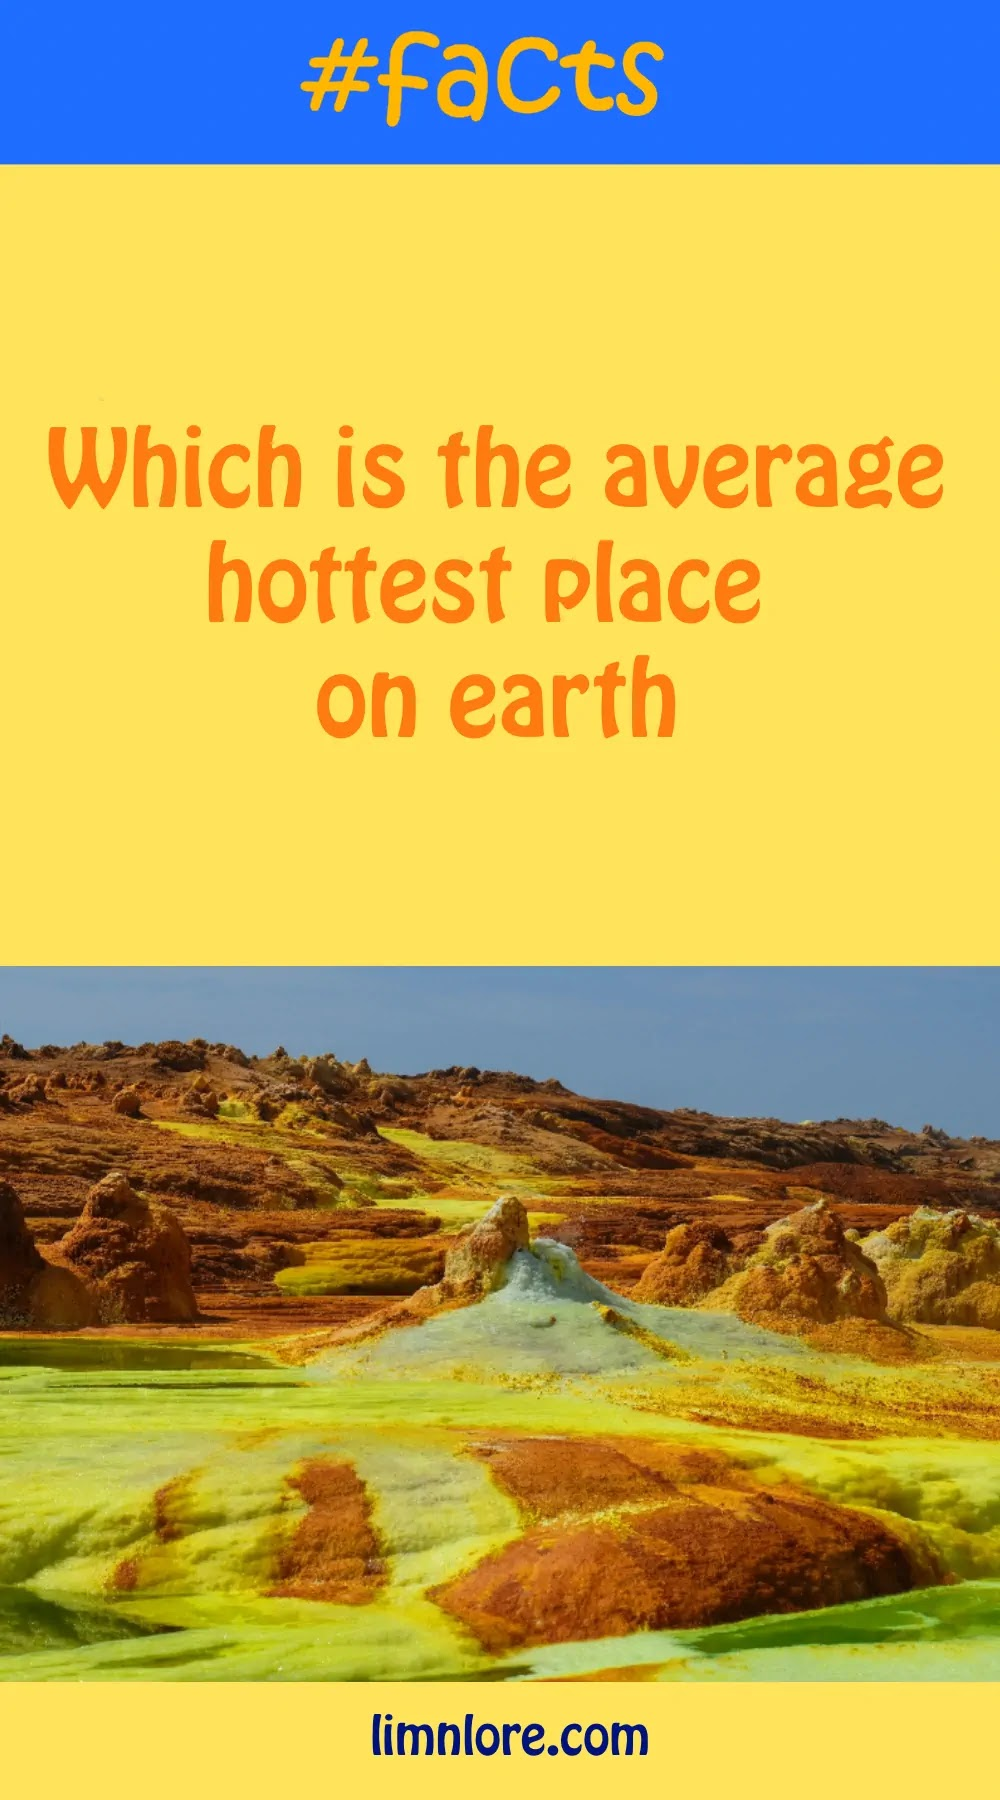 facts about the hottest place on earth in average